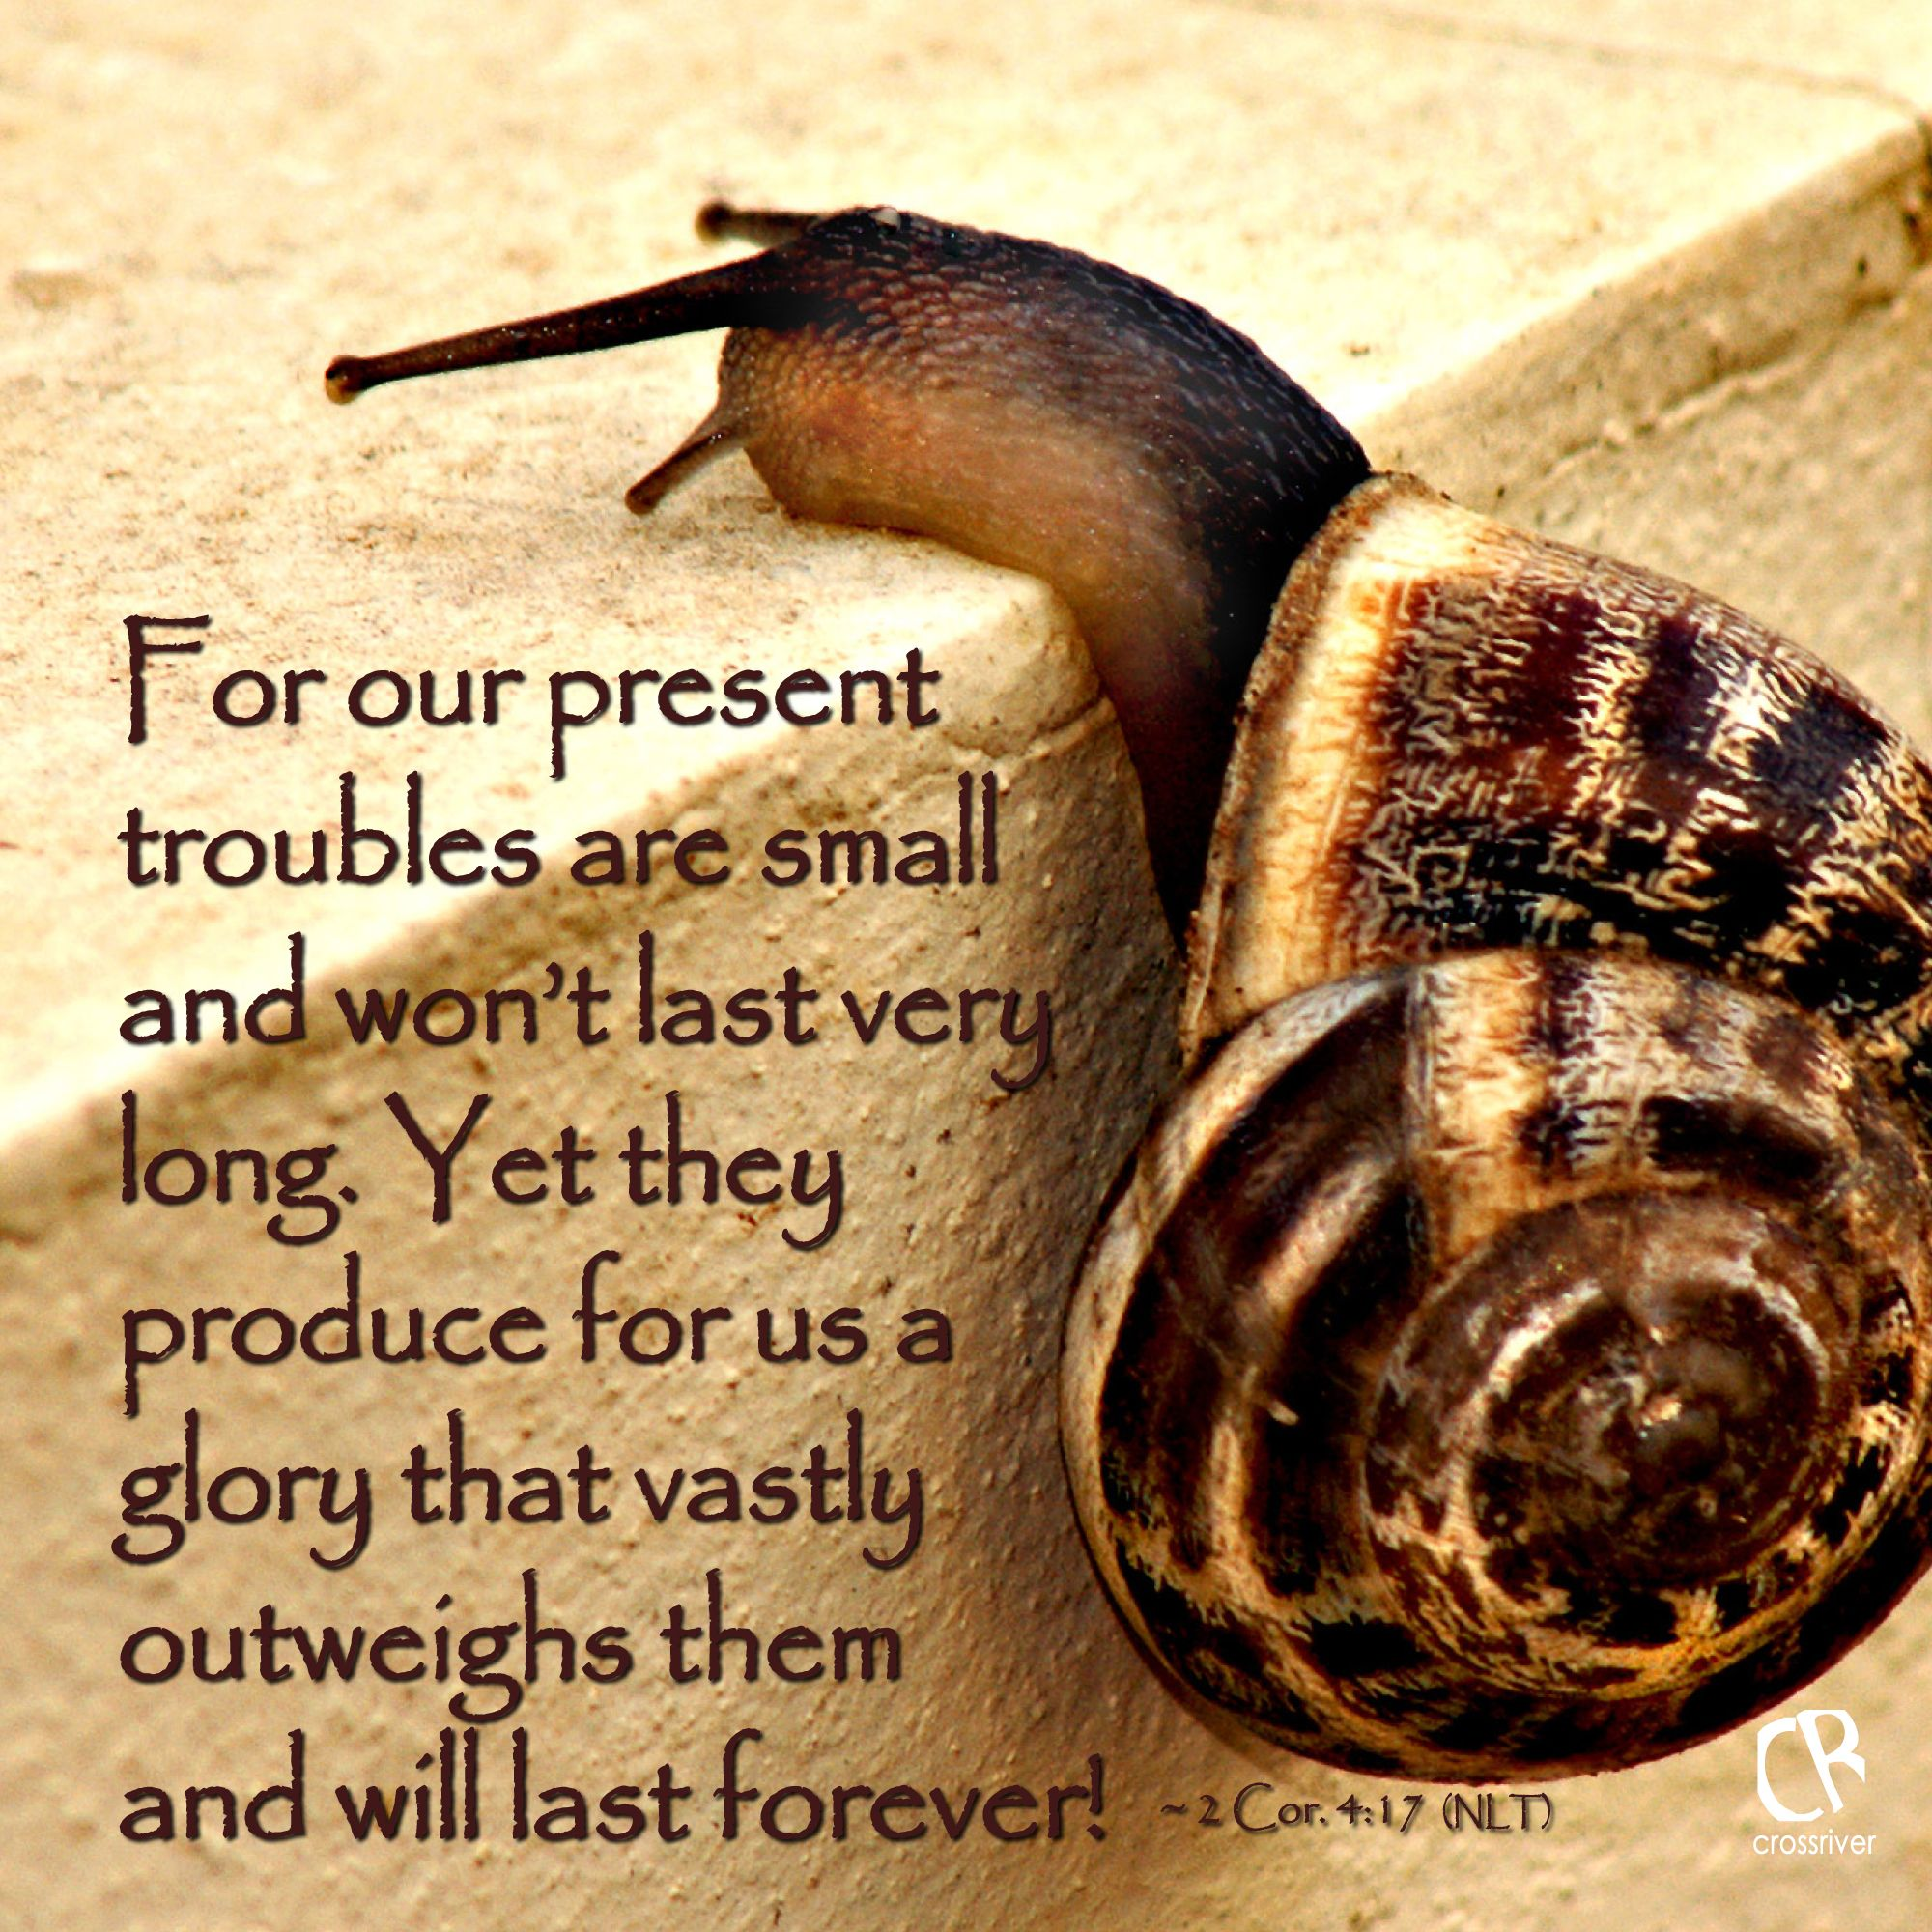 For our present troubles are small and won't last very long. Yet they produce for us a glory that vastly outweighs them and will last forever! ~ 2 Cor. 4:17 #NLT #Bible verse   CrossRiverMedia.com